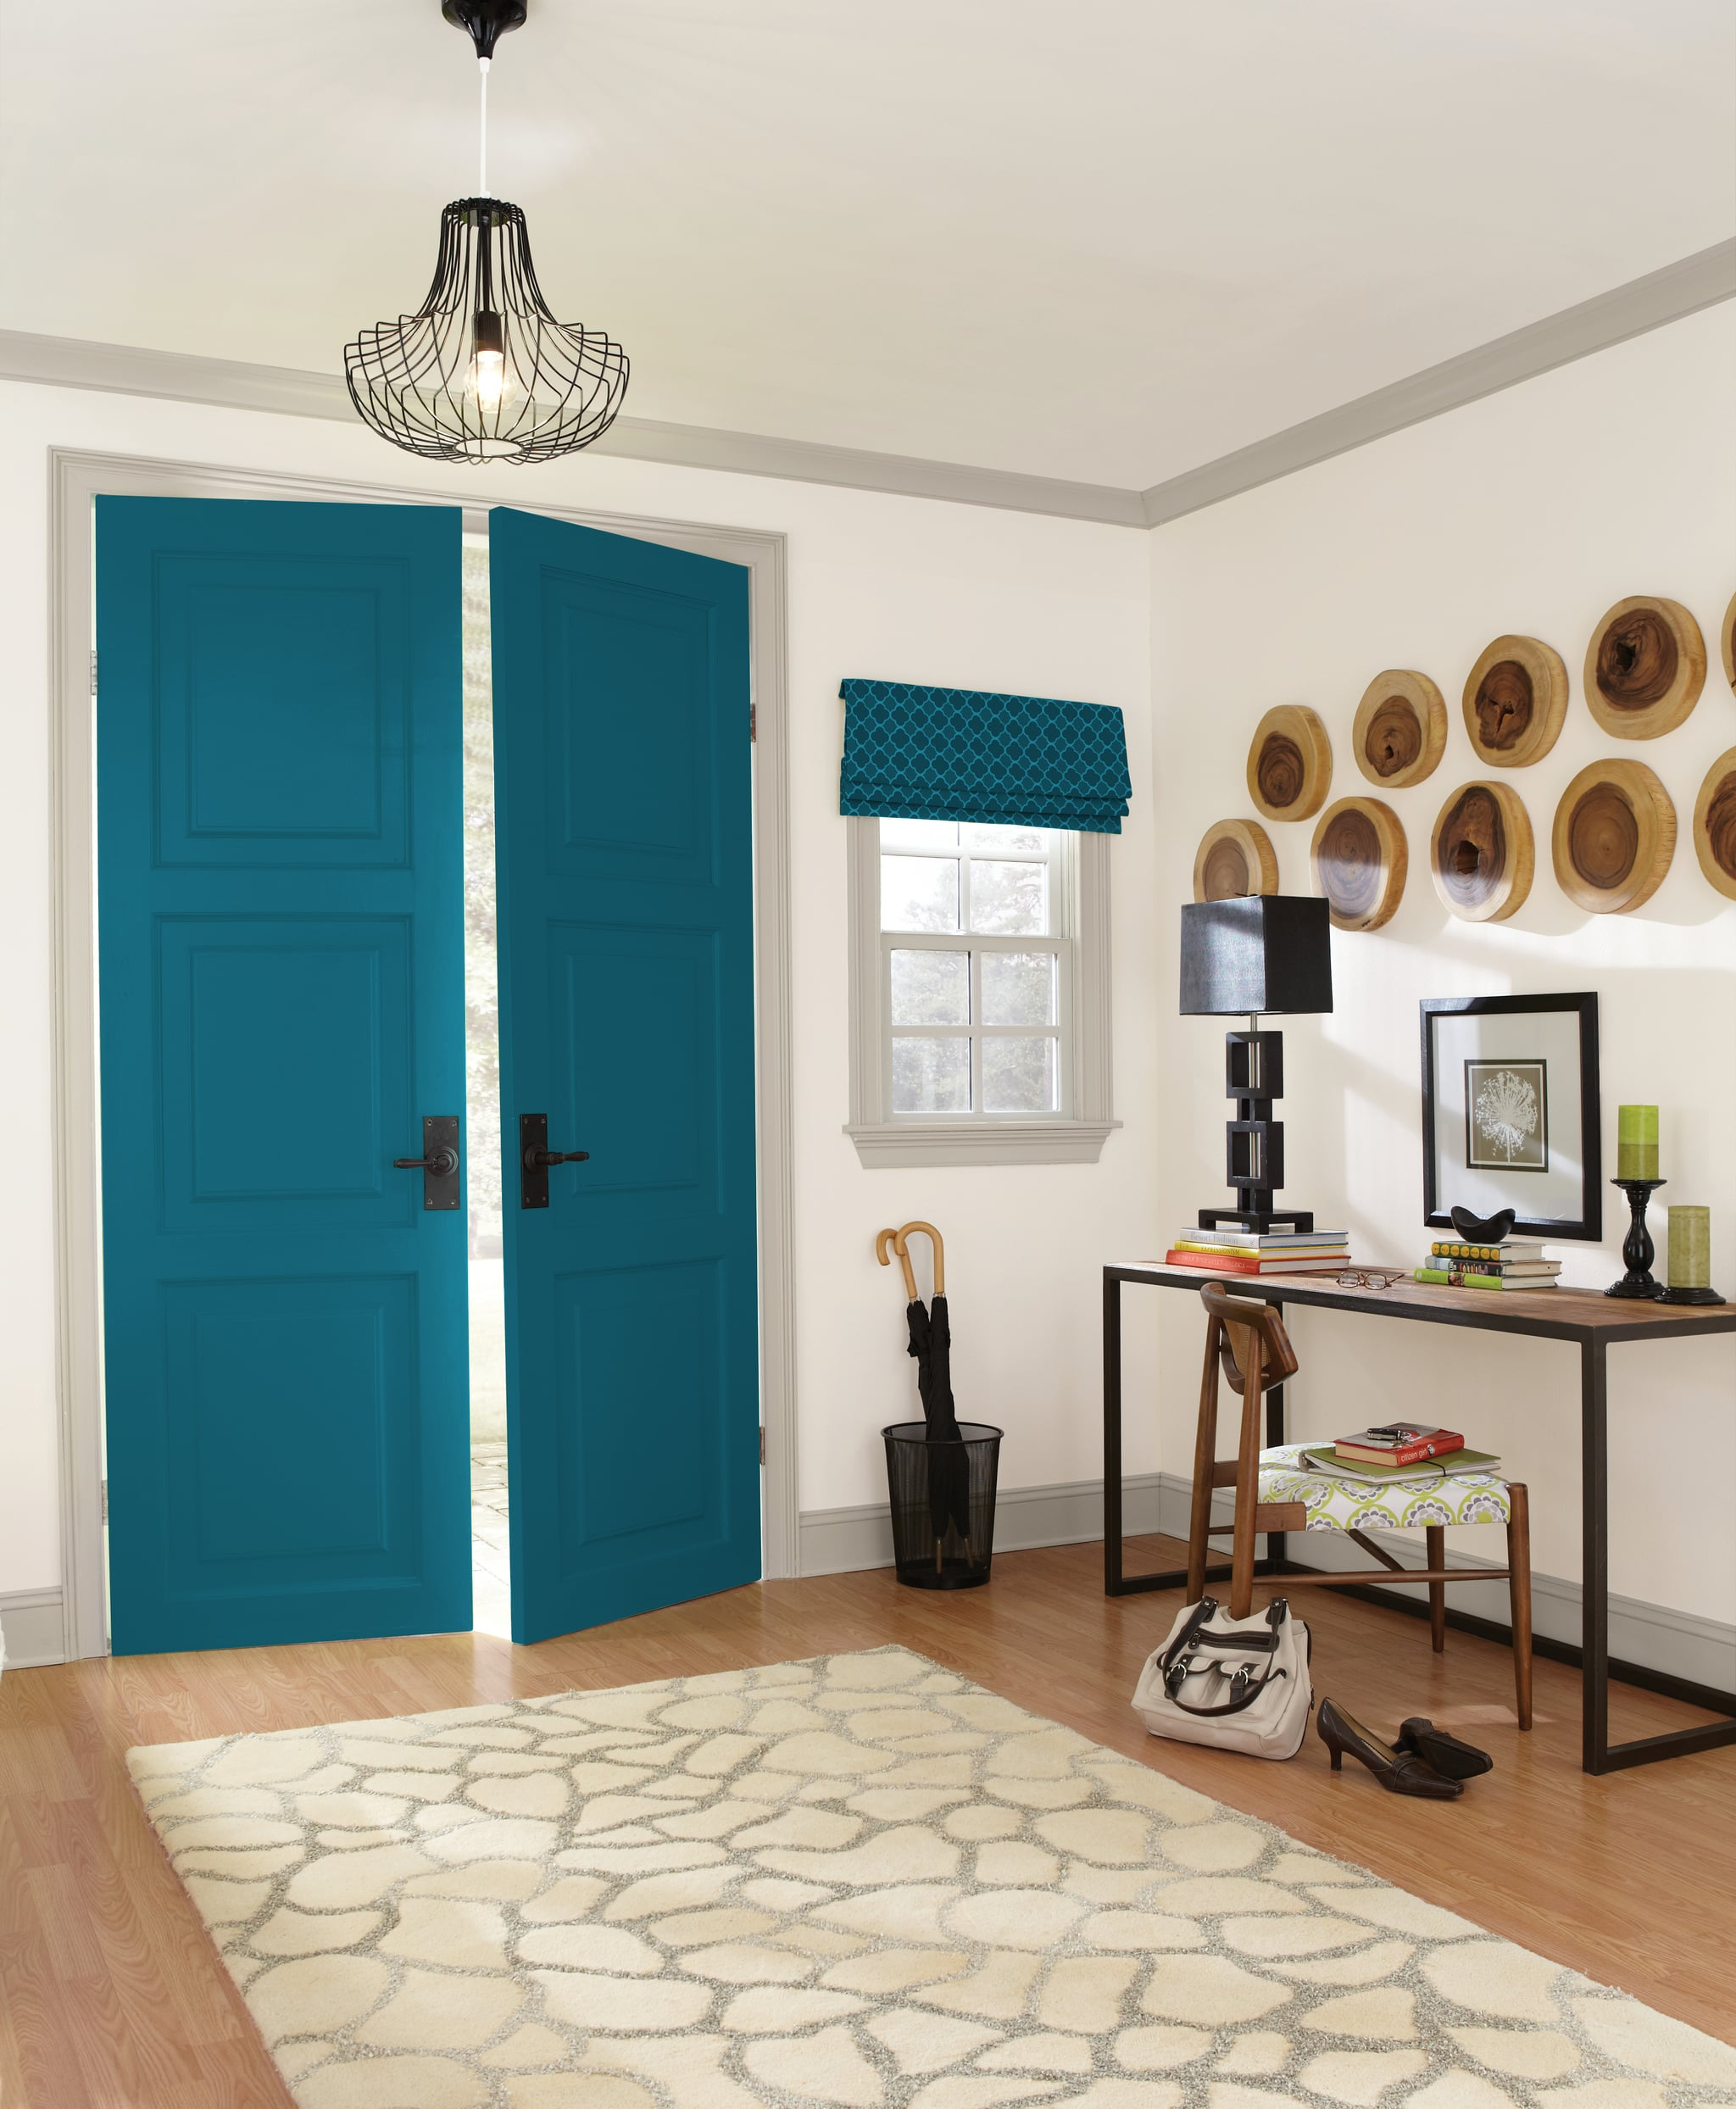 Oceanside Sherwin Williams Paint Color 2018 Popsugar Home